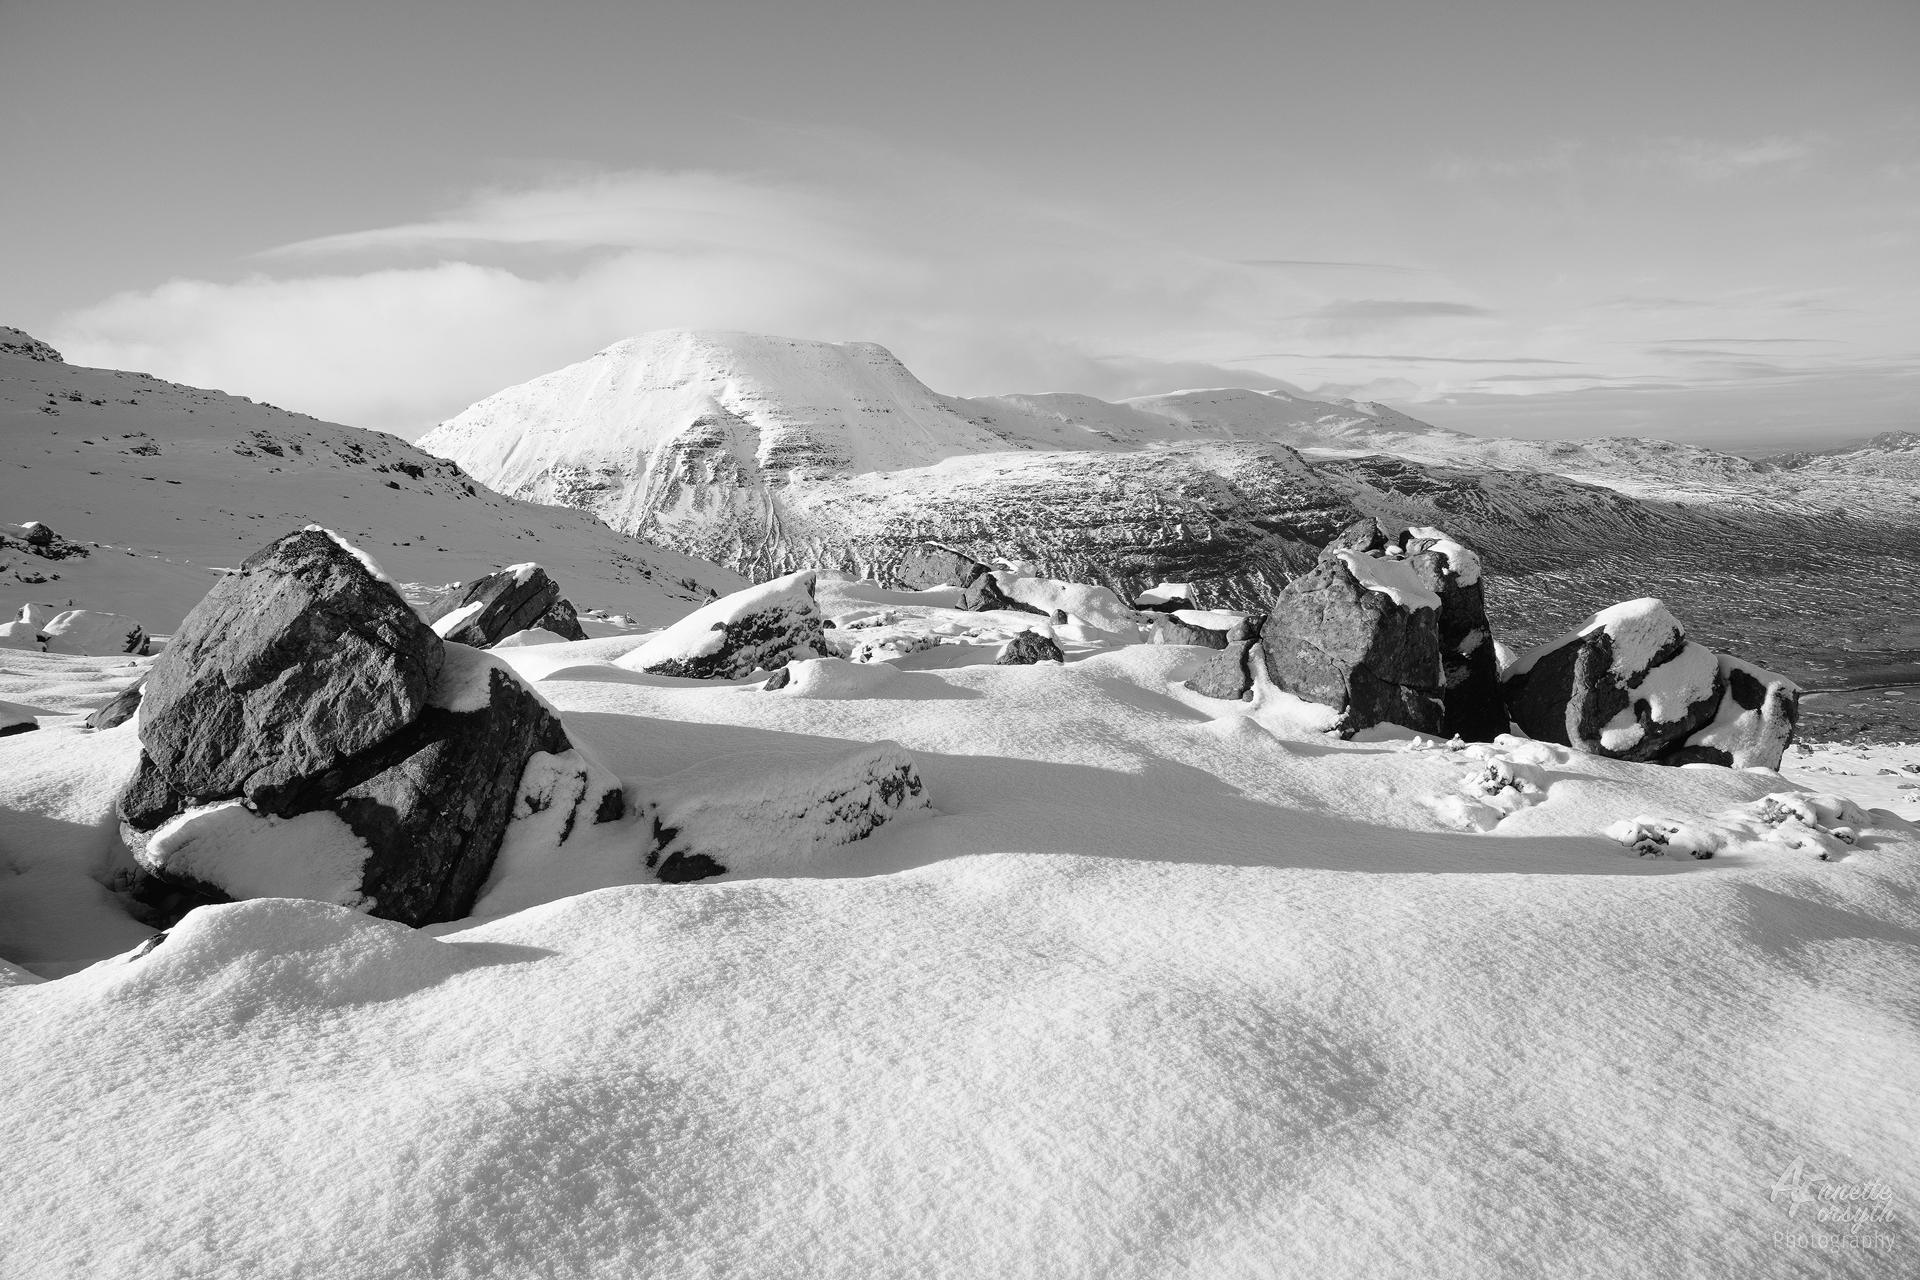 Into the Torridon Wilderness, Beinn an Eoin